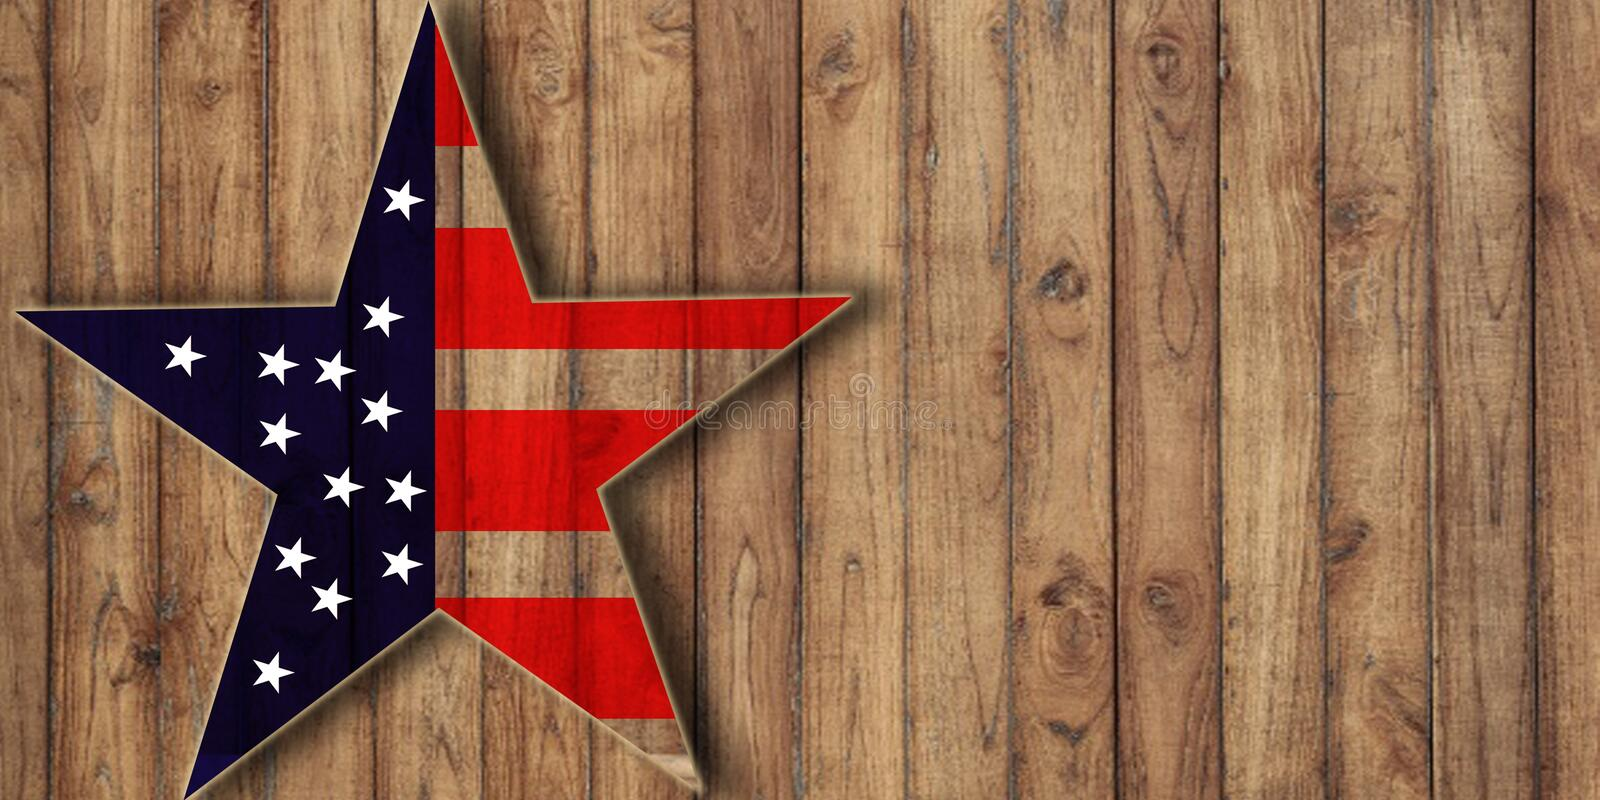 Usa flag in star shape on wood, background with copy space royalty free stock photo